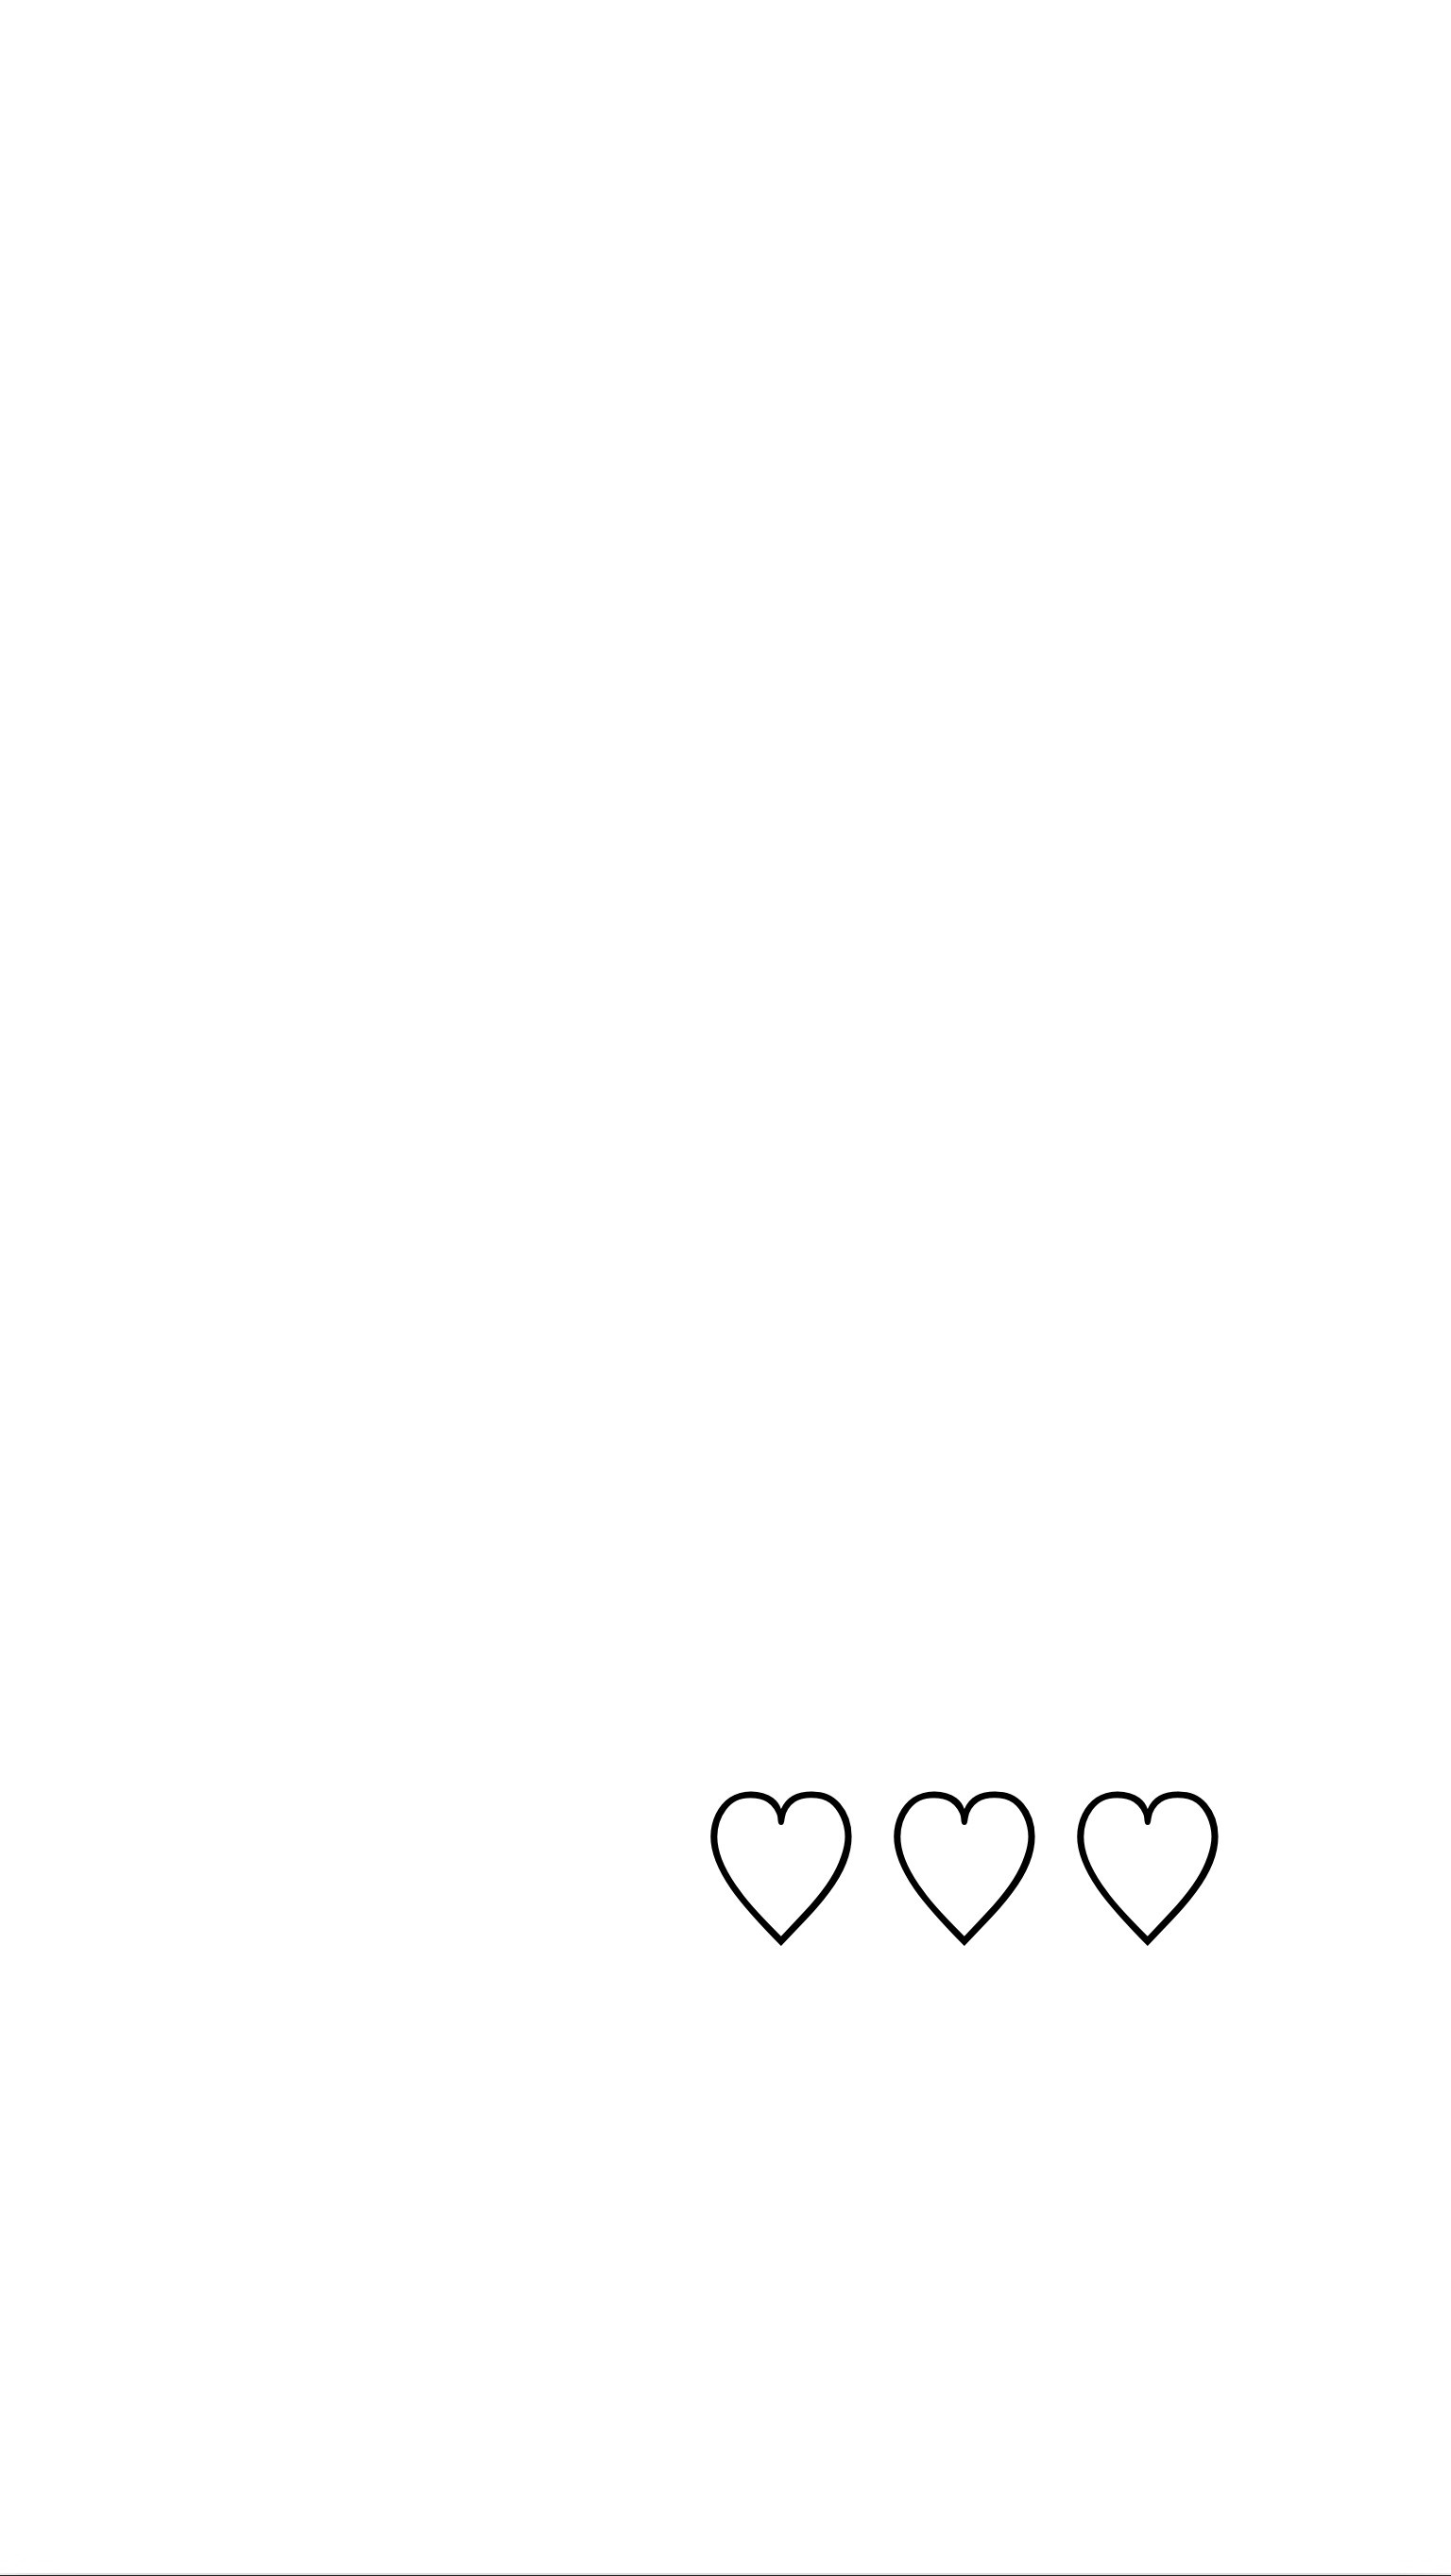 Simple white background with black hearts iphone wallpaper/homescreen